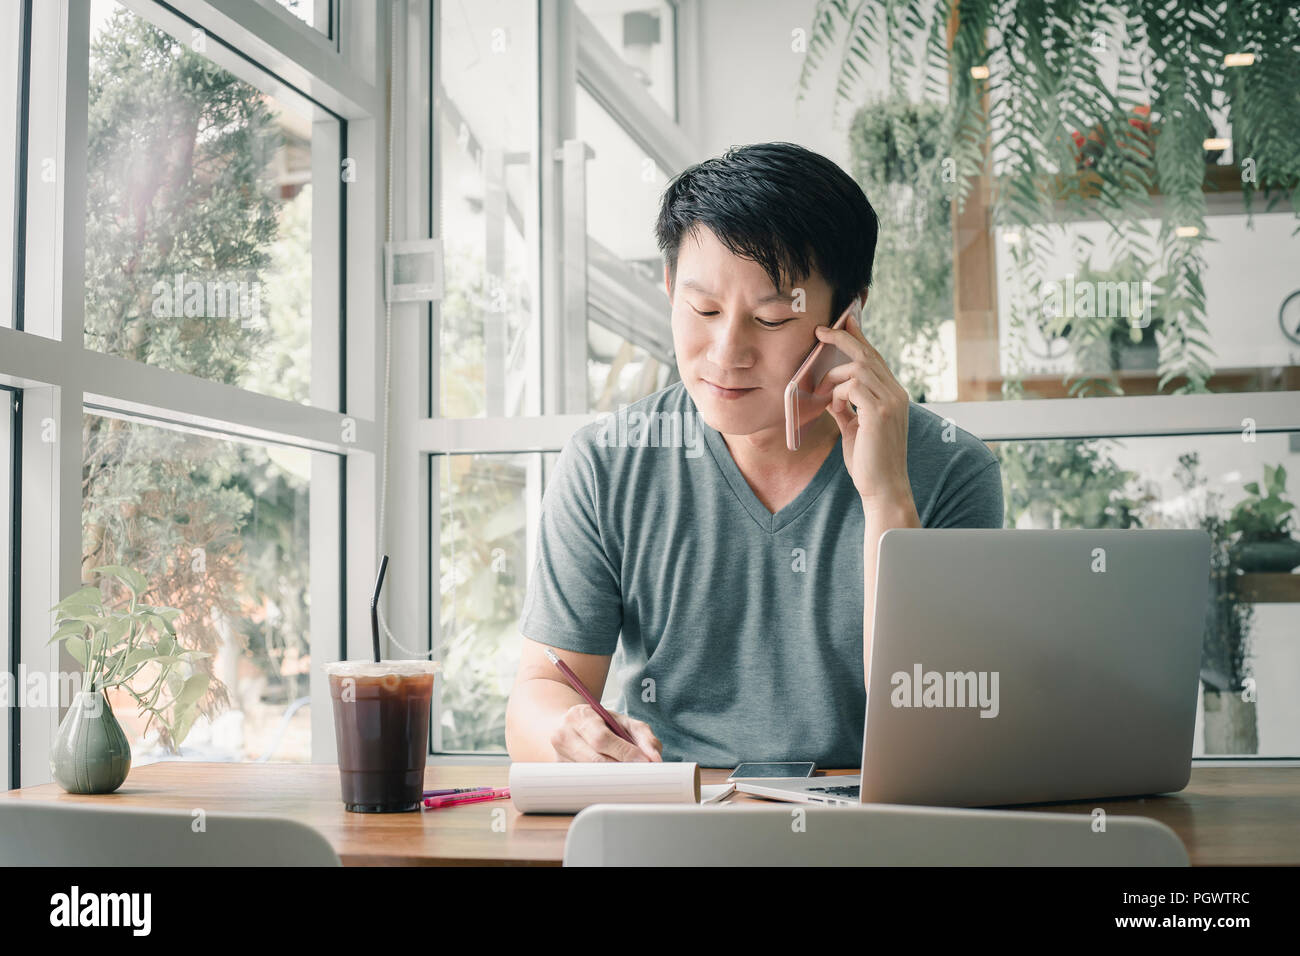 Freelancer man working online at his home. - Stock Image